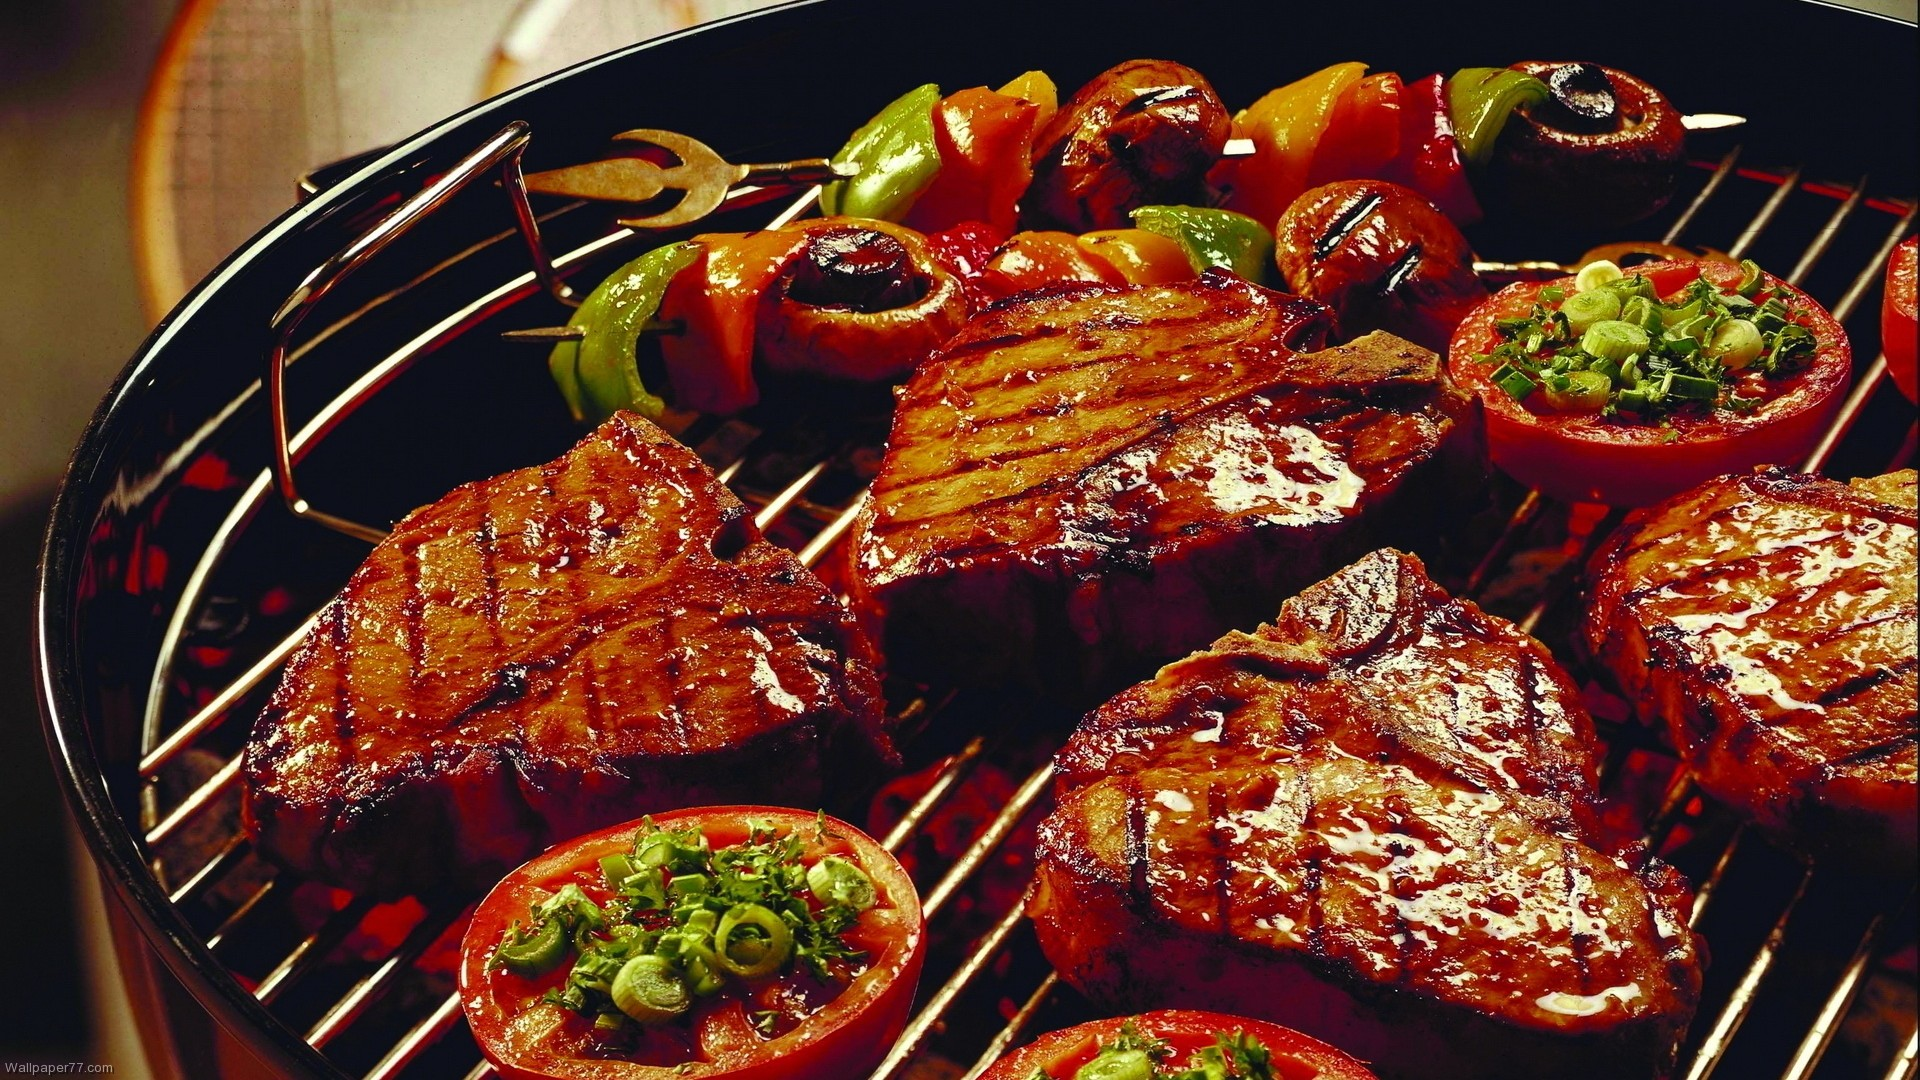 Grilled delicious food 4244814 1920x1080 all for desktop for Cuisine wallpaper